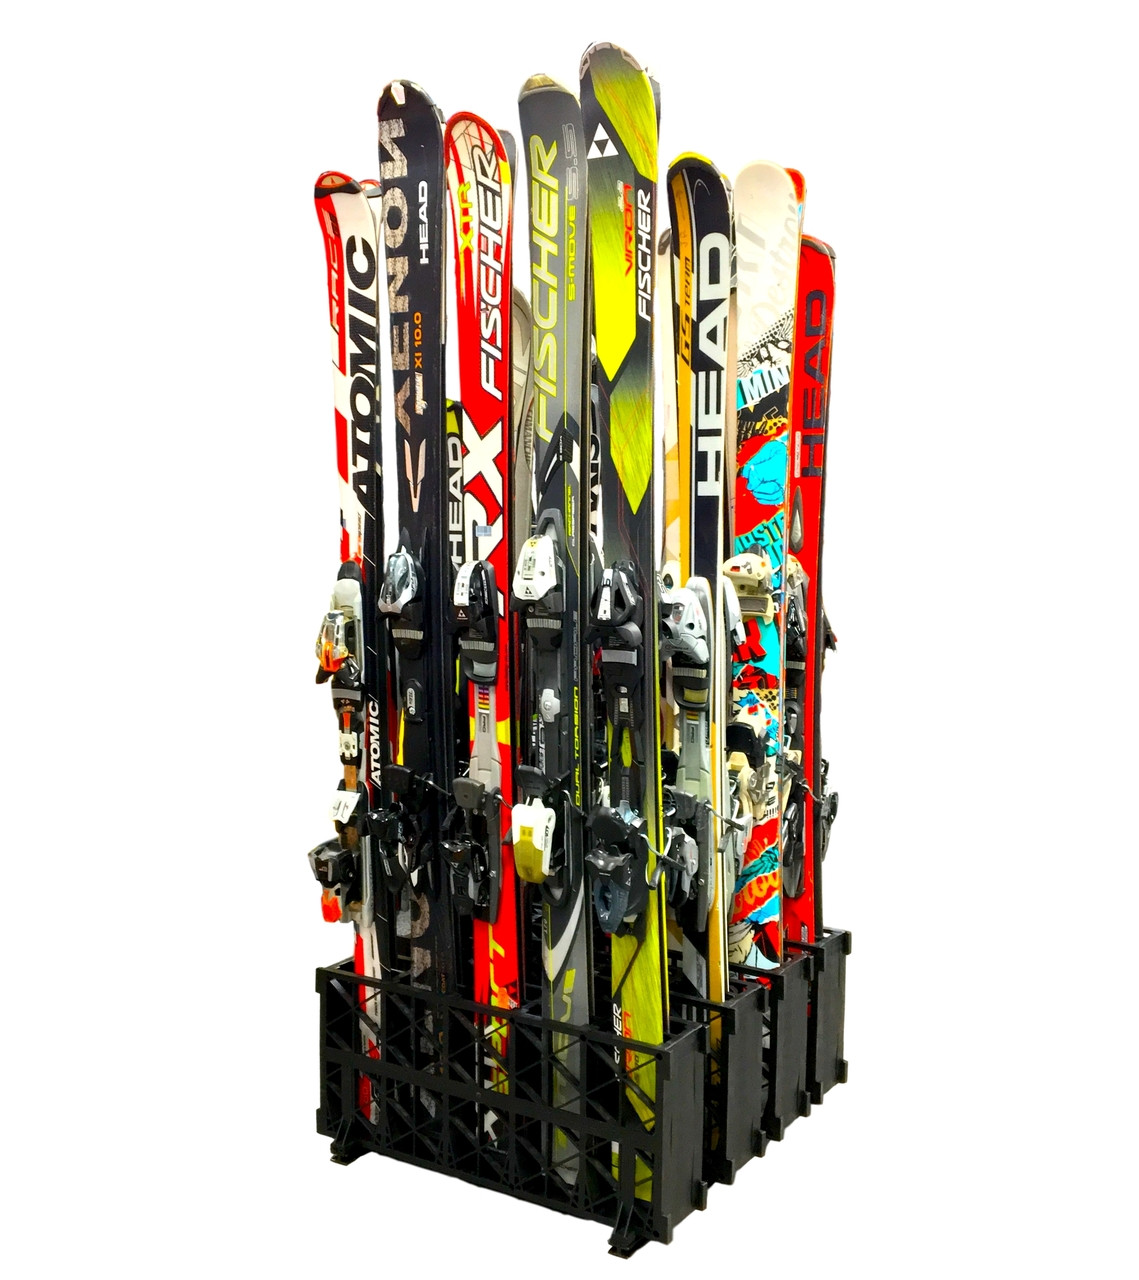 Freestanding Ski Racks | Resort & Ski Shop Storage | Holds up to 20 Skis